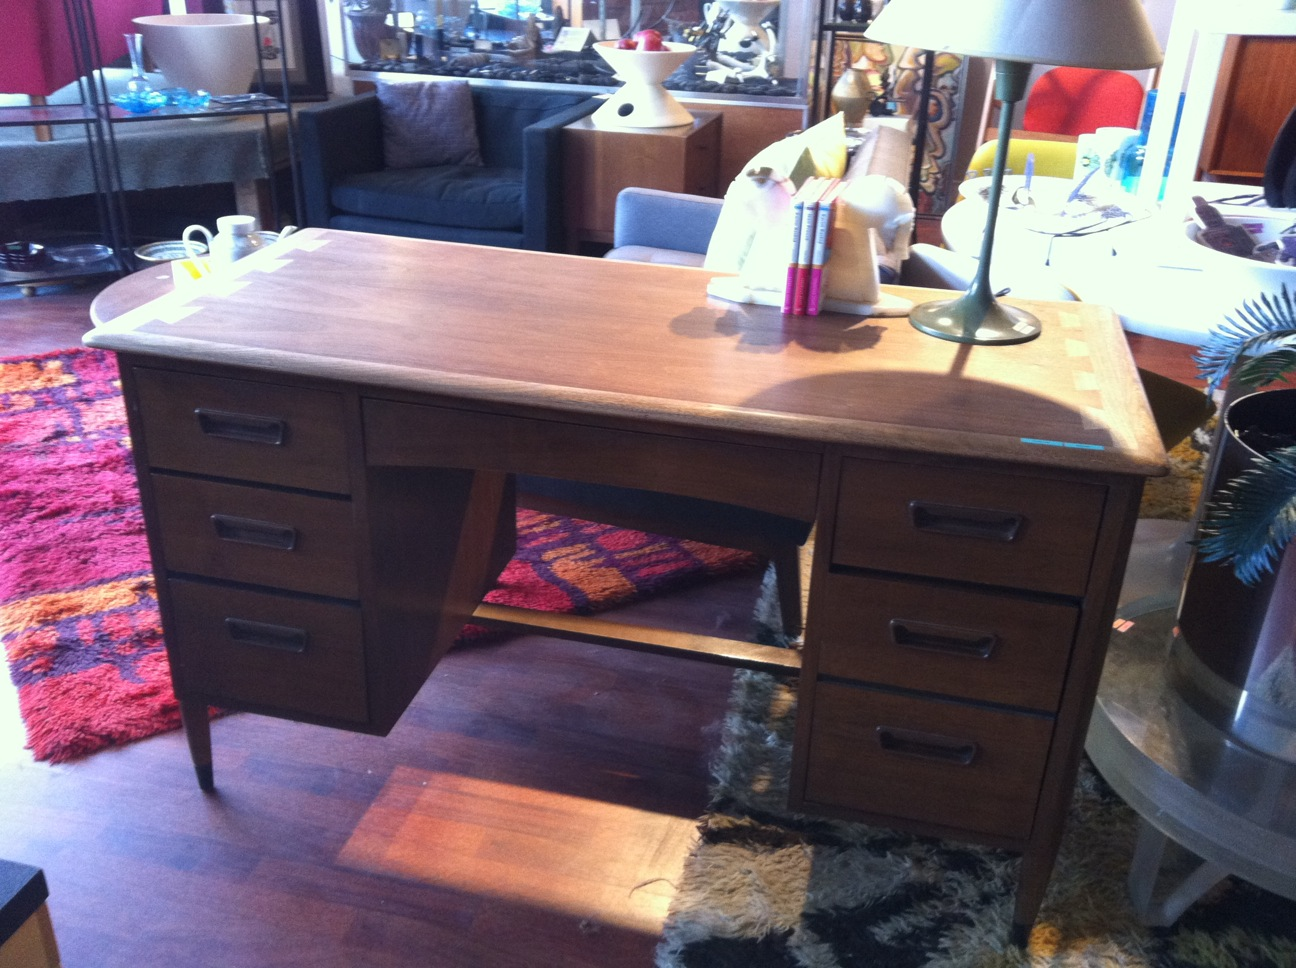 Beautiful midcentury desk by Lane.  Features seven drawers, great wood pulls, and iconic dovetailing detail on the top.  Measures 50 inches wide, 23 inches deep and 29 inches tall.  $695  SKU# F0079